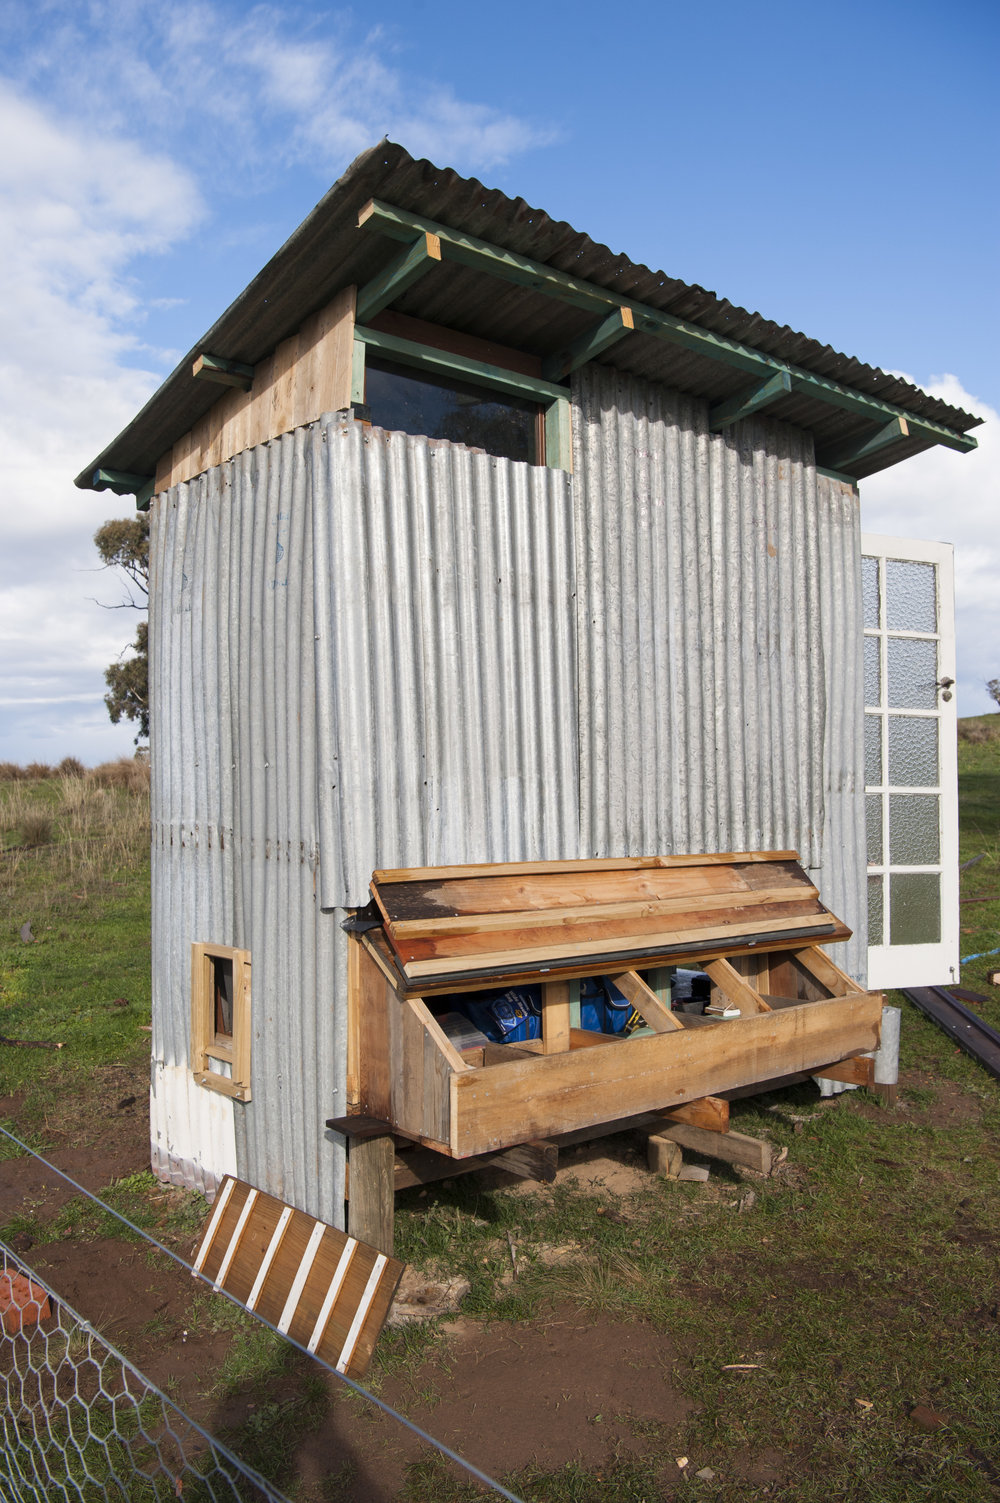 chook_shed_04.jpg